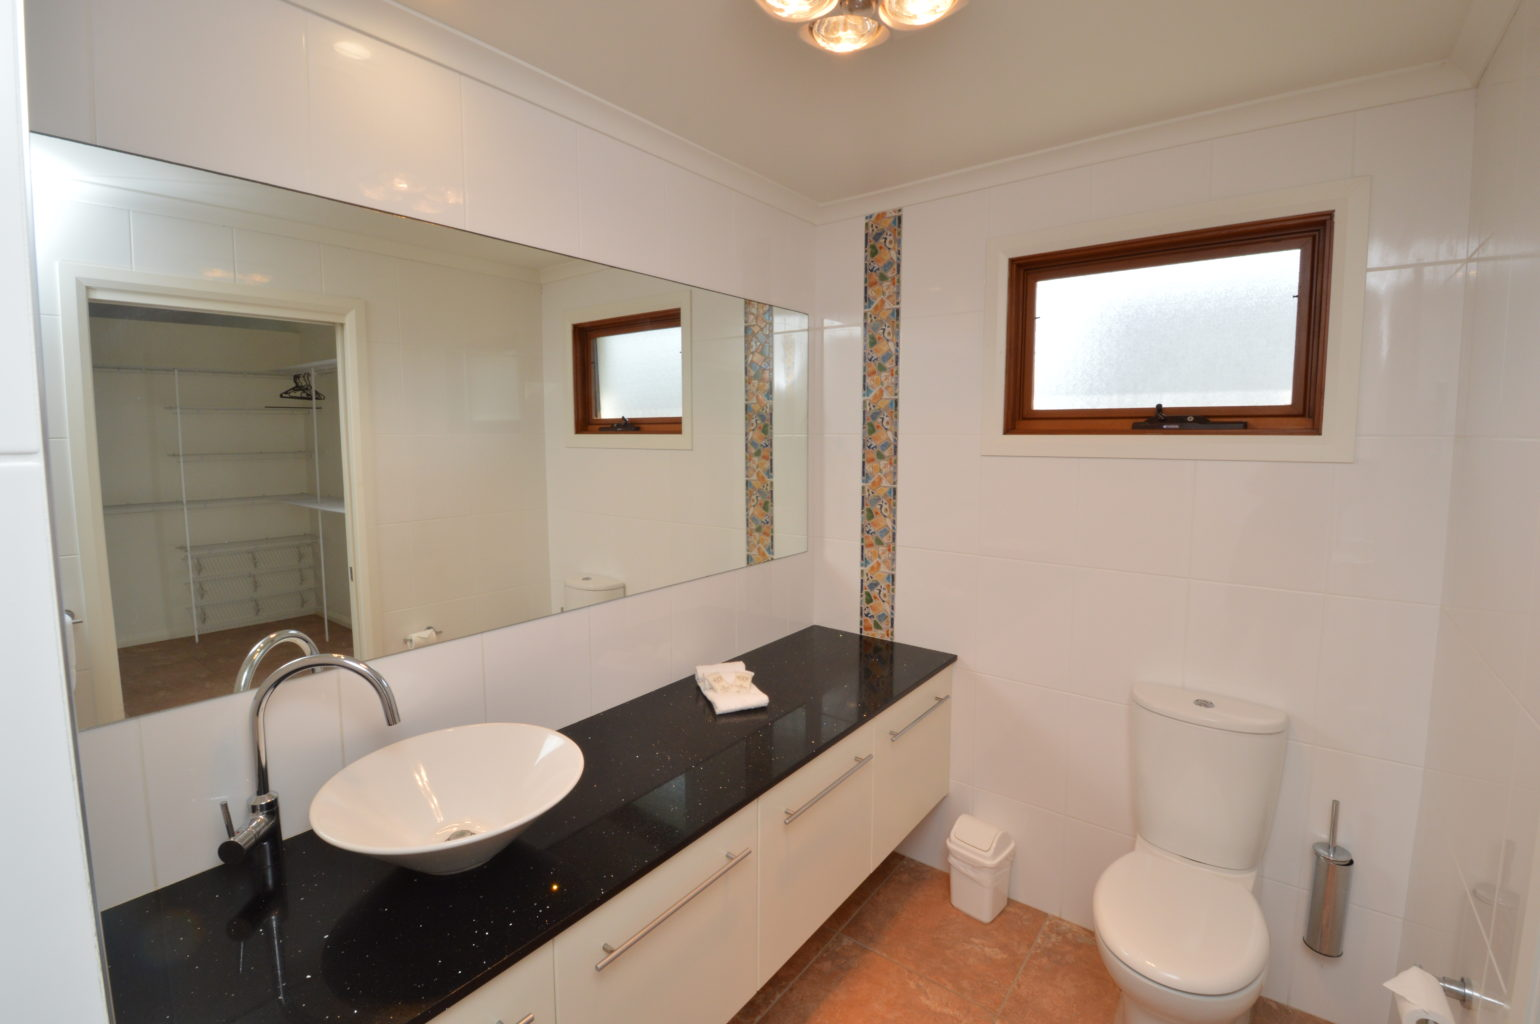 Green Waves, The Point ensuite